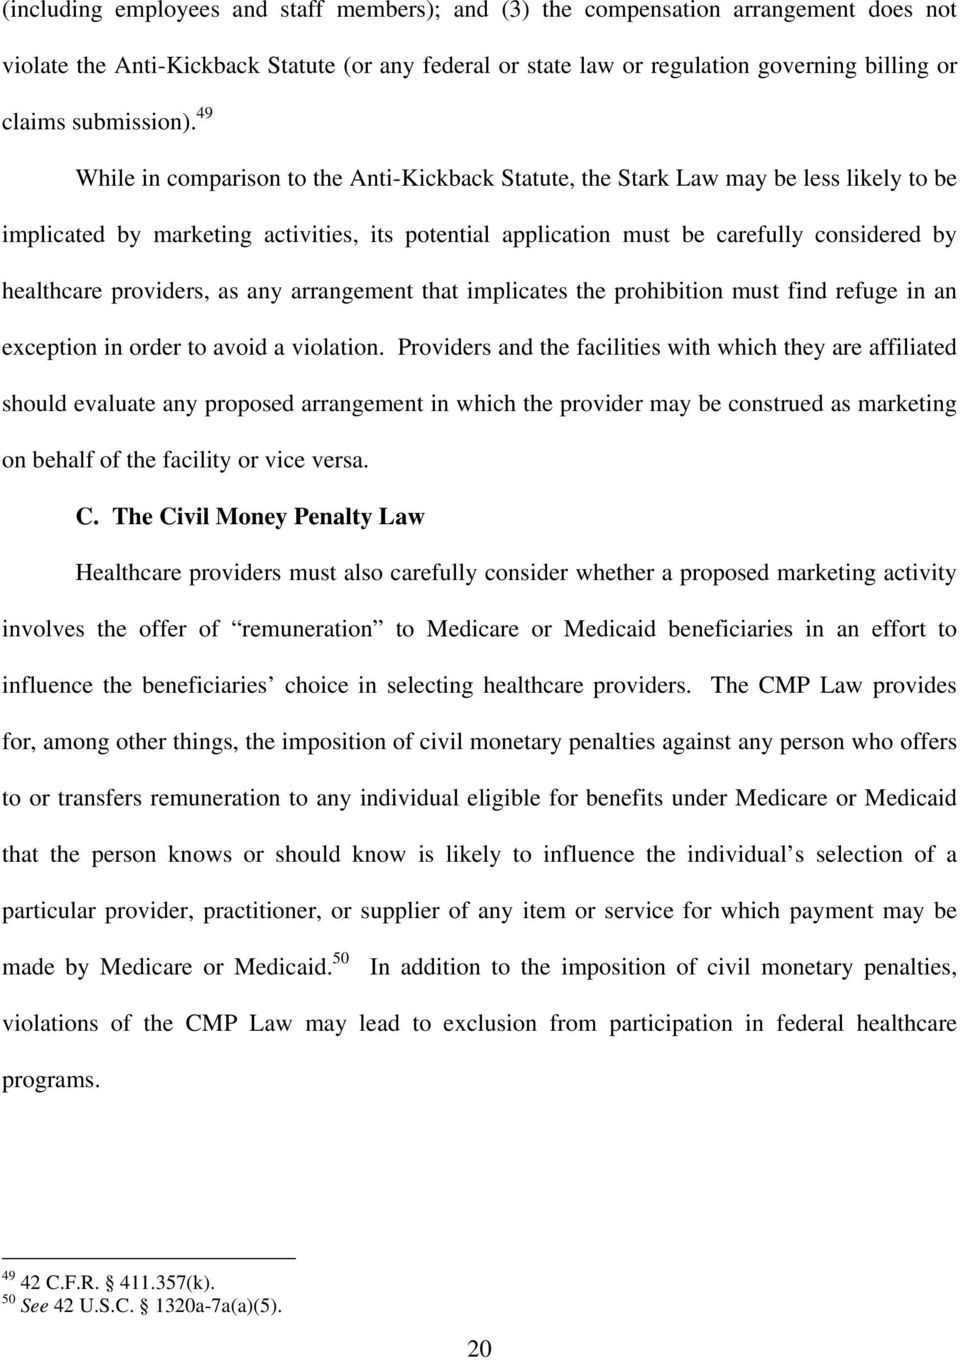 49 While in comparison to the Anti-Kickback Statute, the Stark Law may be less likely to be implicated by marketing activities, its potential application must be carefully considered by healthcare